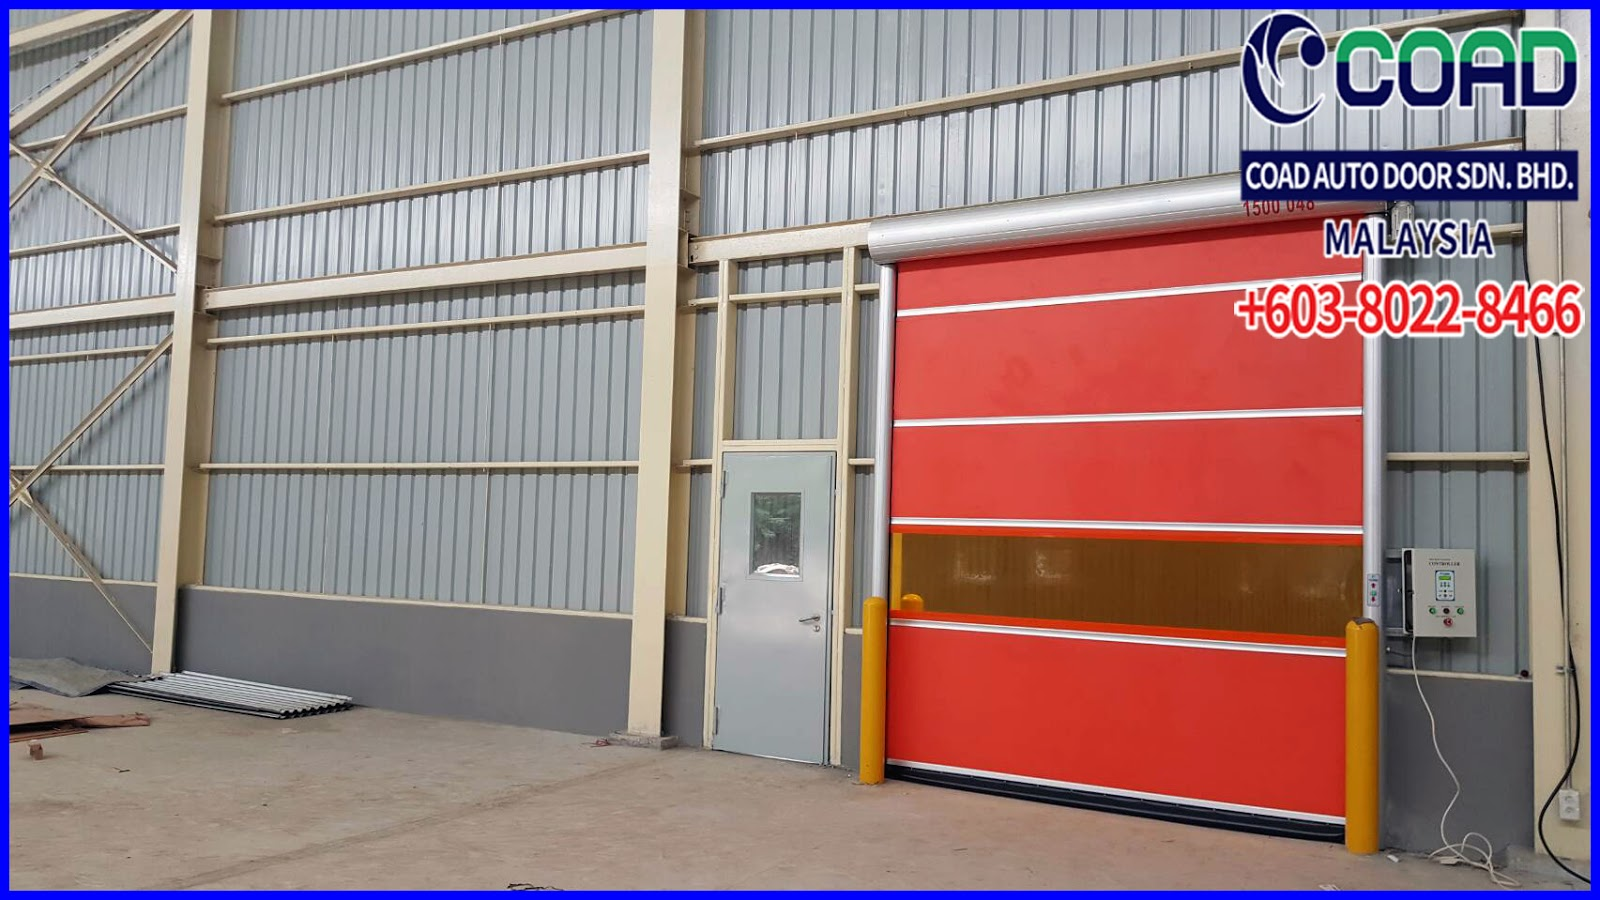 Coad High Speed Door Malaysia, High Speed Door, High Speed Door ...